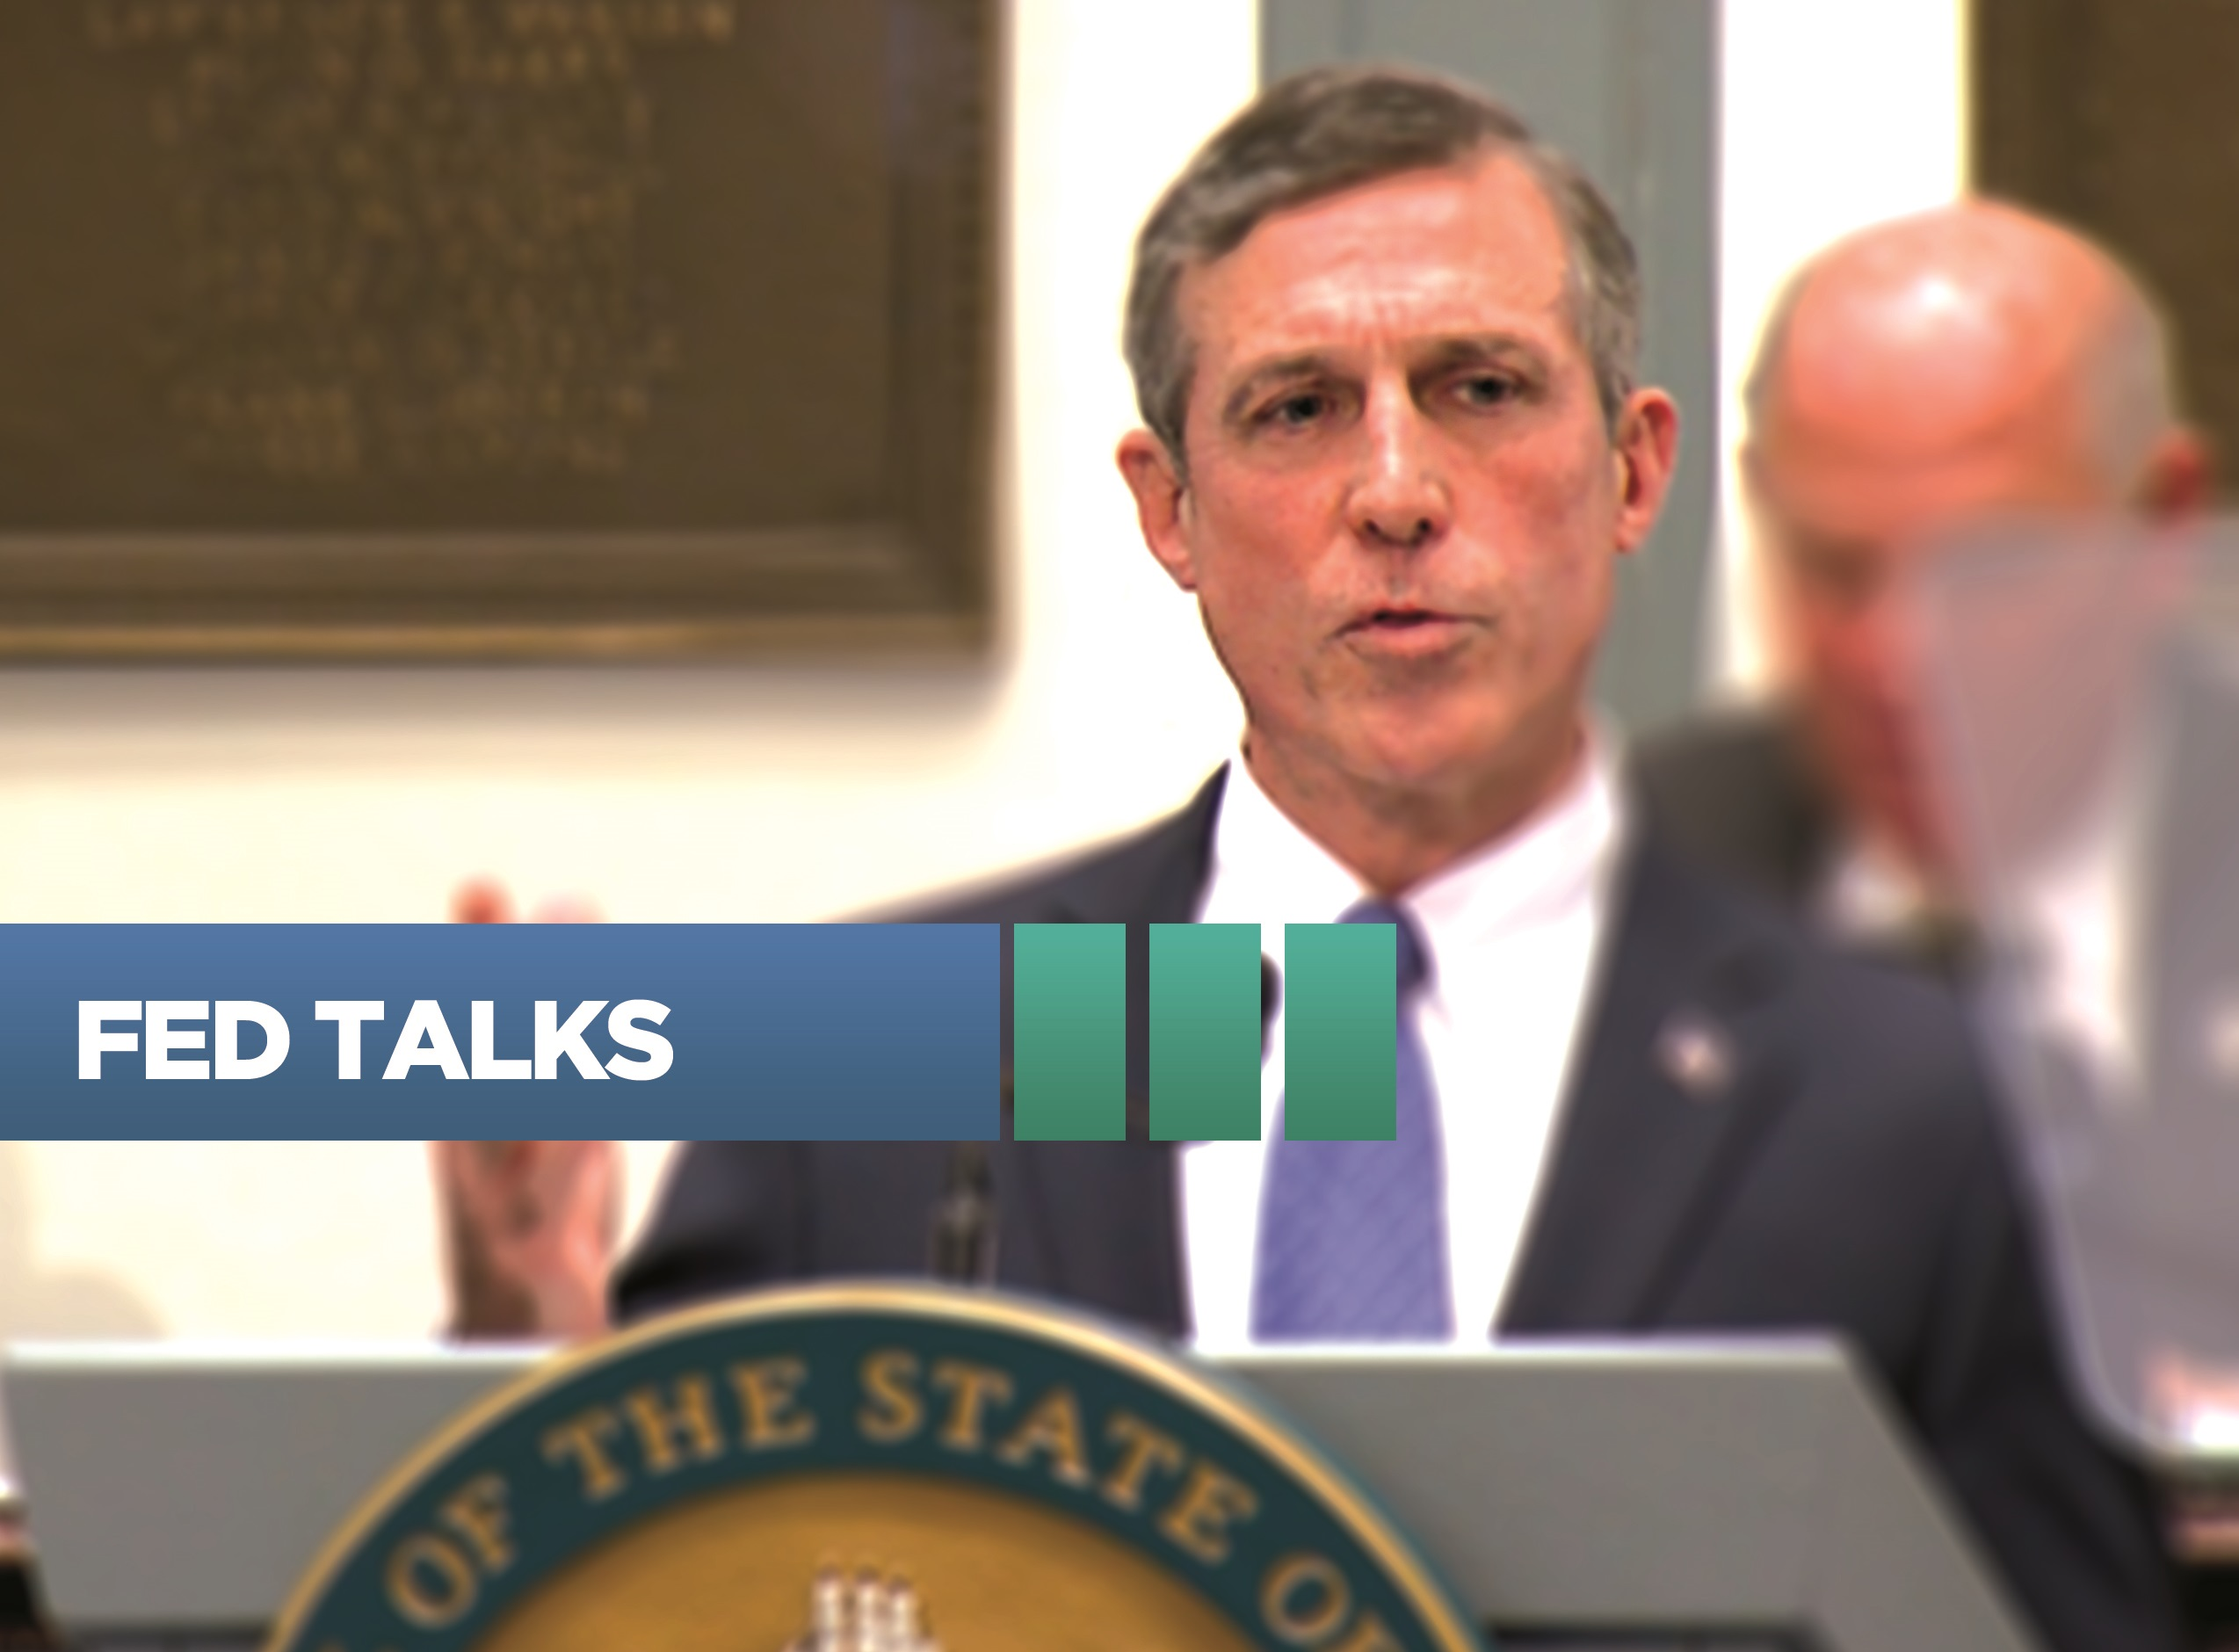 FED TALKS: Governor John Carney